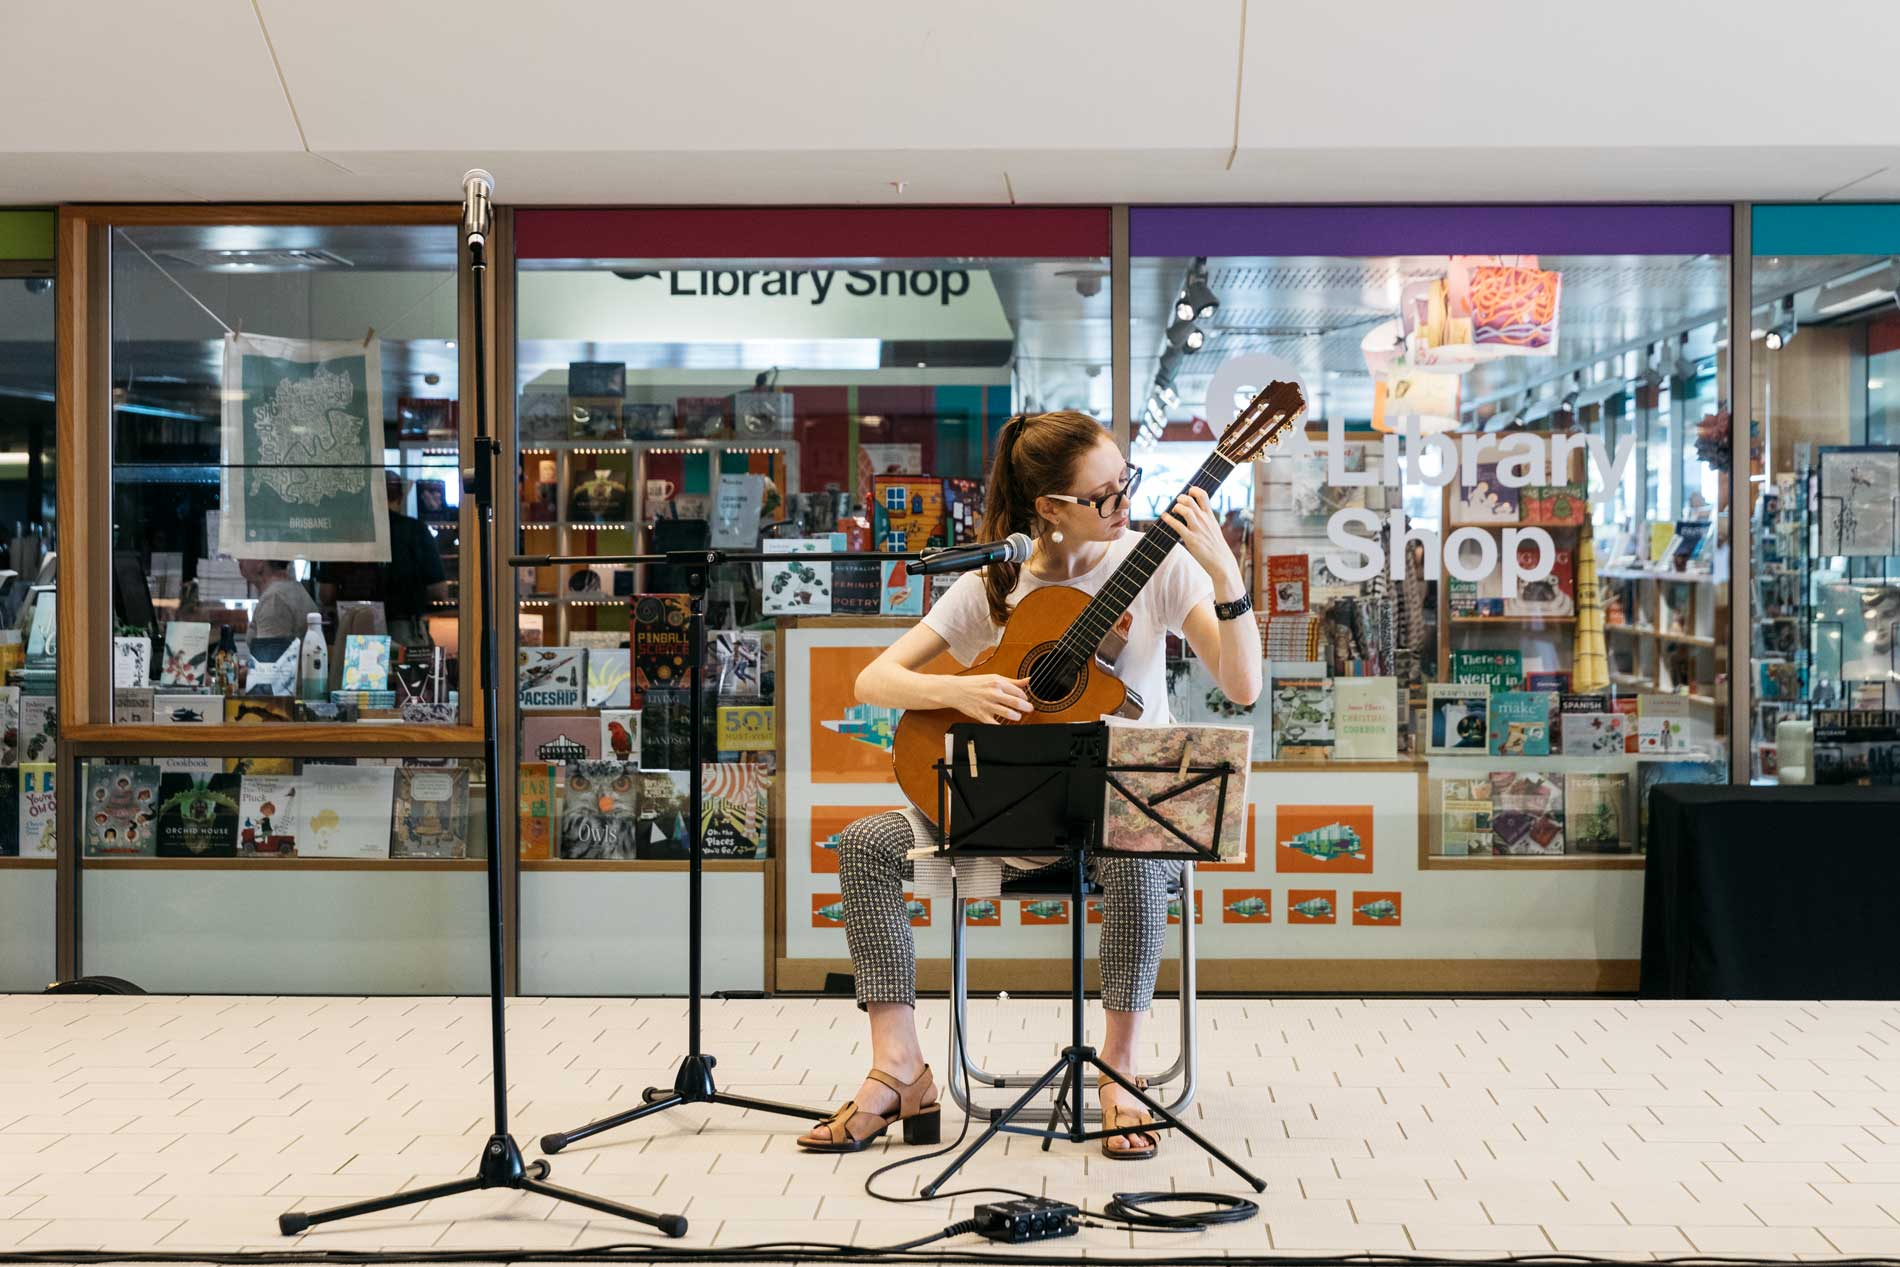 A volunteer musician performing outside the State Library Shop